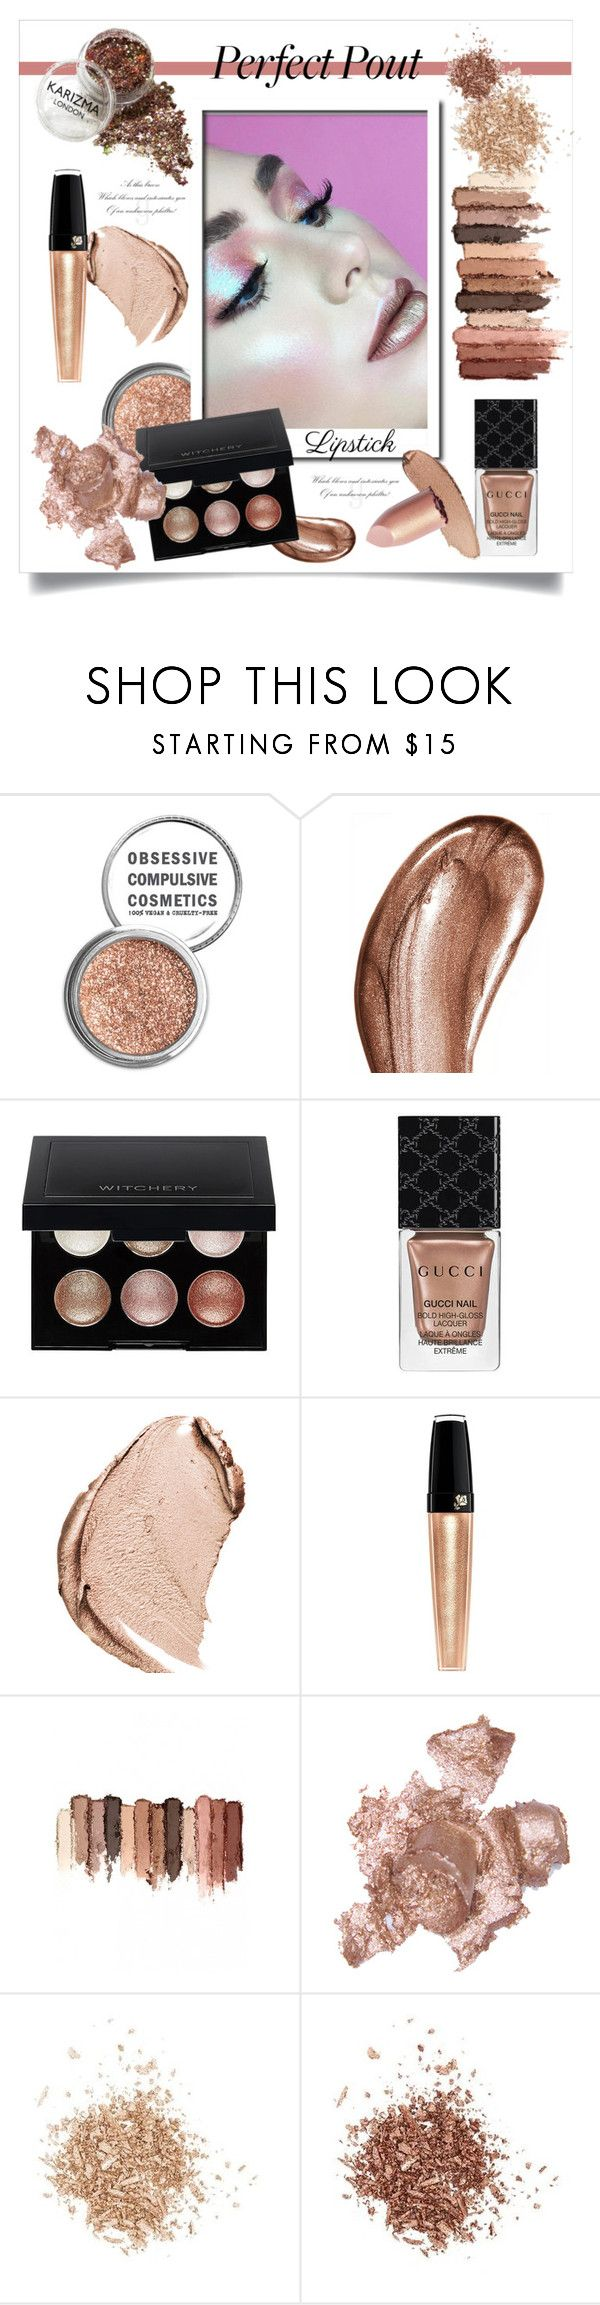 """Высокий Блеск: Металлик Помада!"" by miss-image ❤ liked on Polyvore featuring beauty, Obsessive Compulsive Cosmetics, Laura Mercier, Witchery, Gucci, Christian Dior, tarte, By Terry and Topshop"